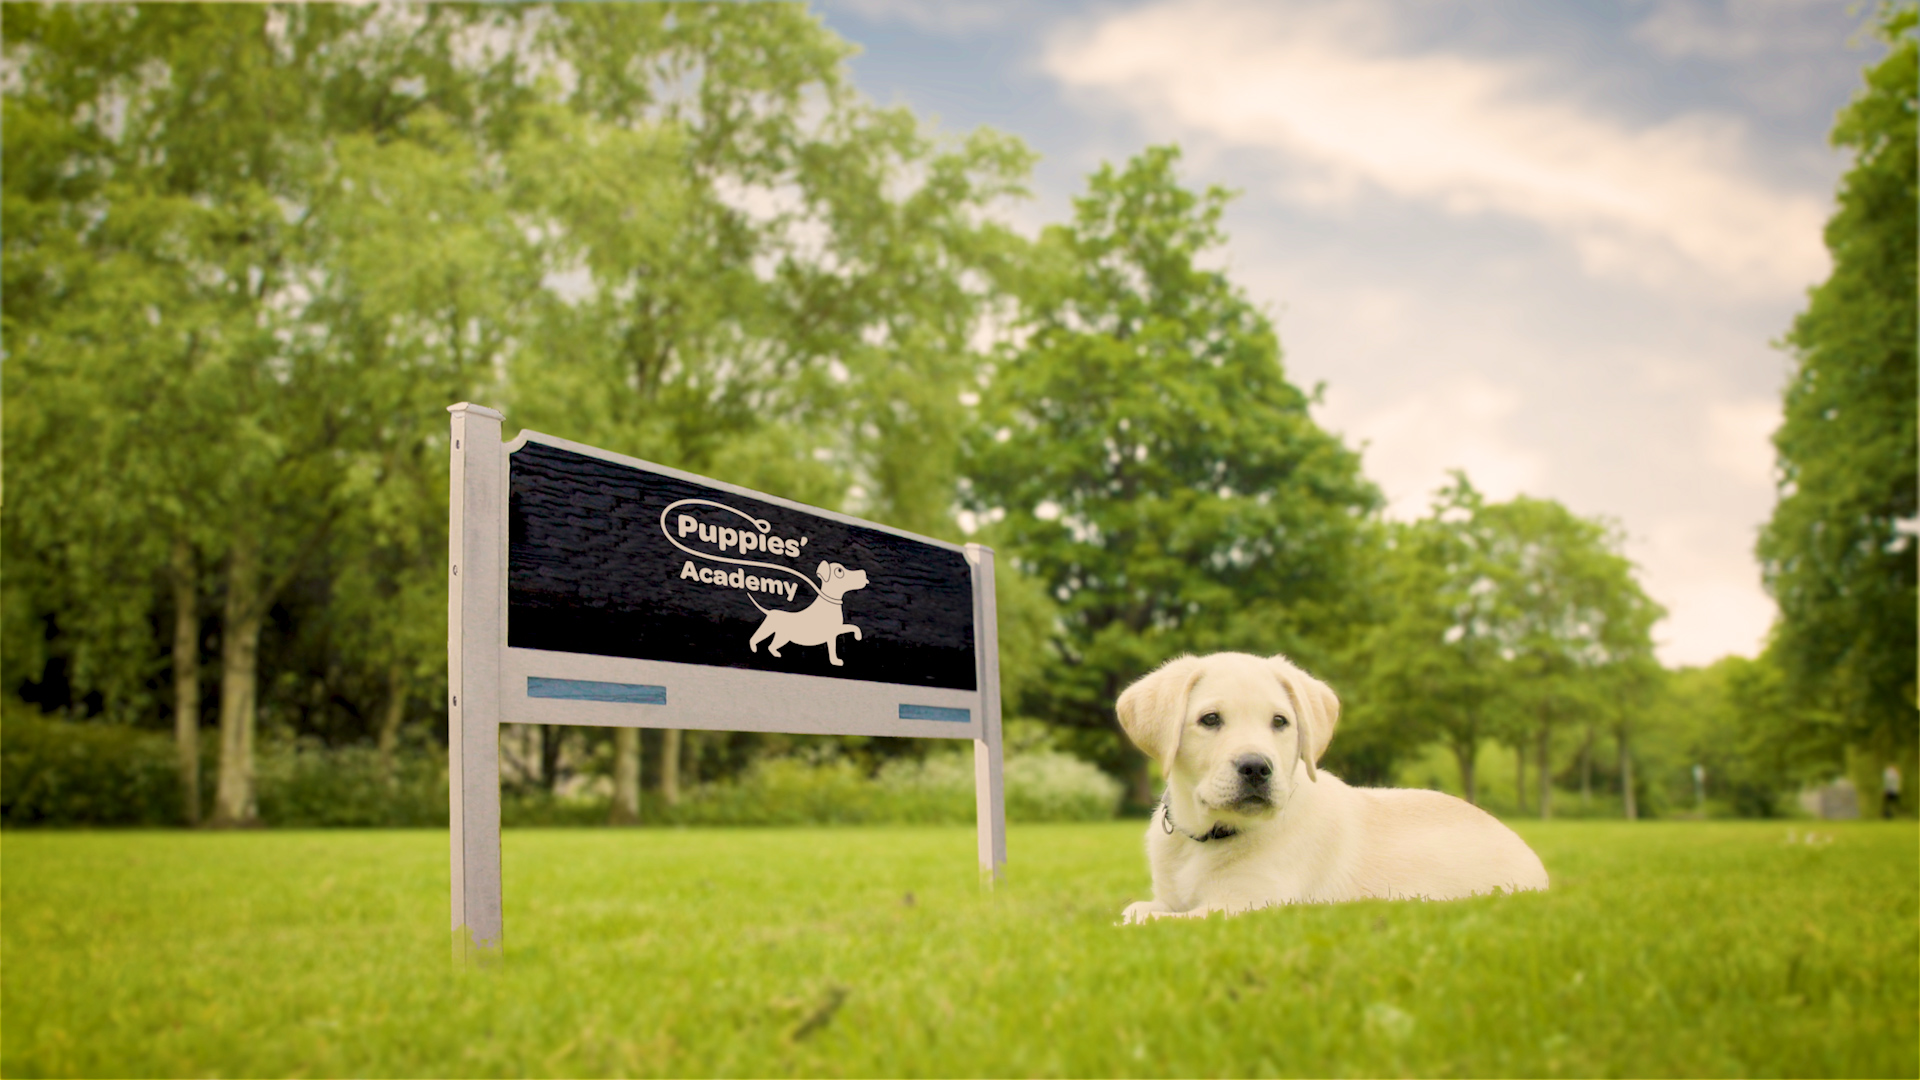 find out more about Puppies Academy campaign for Irish Guide Dogs for the Blind goes live